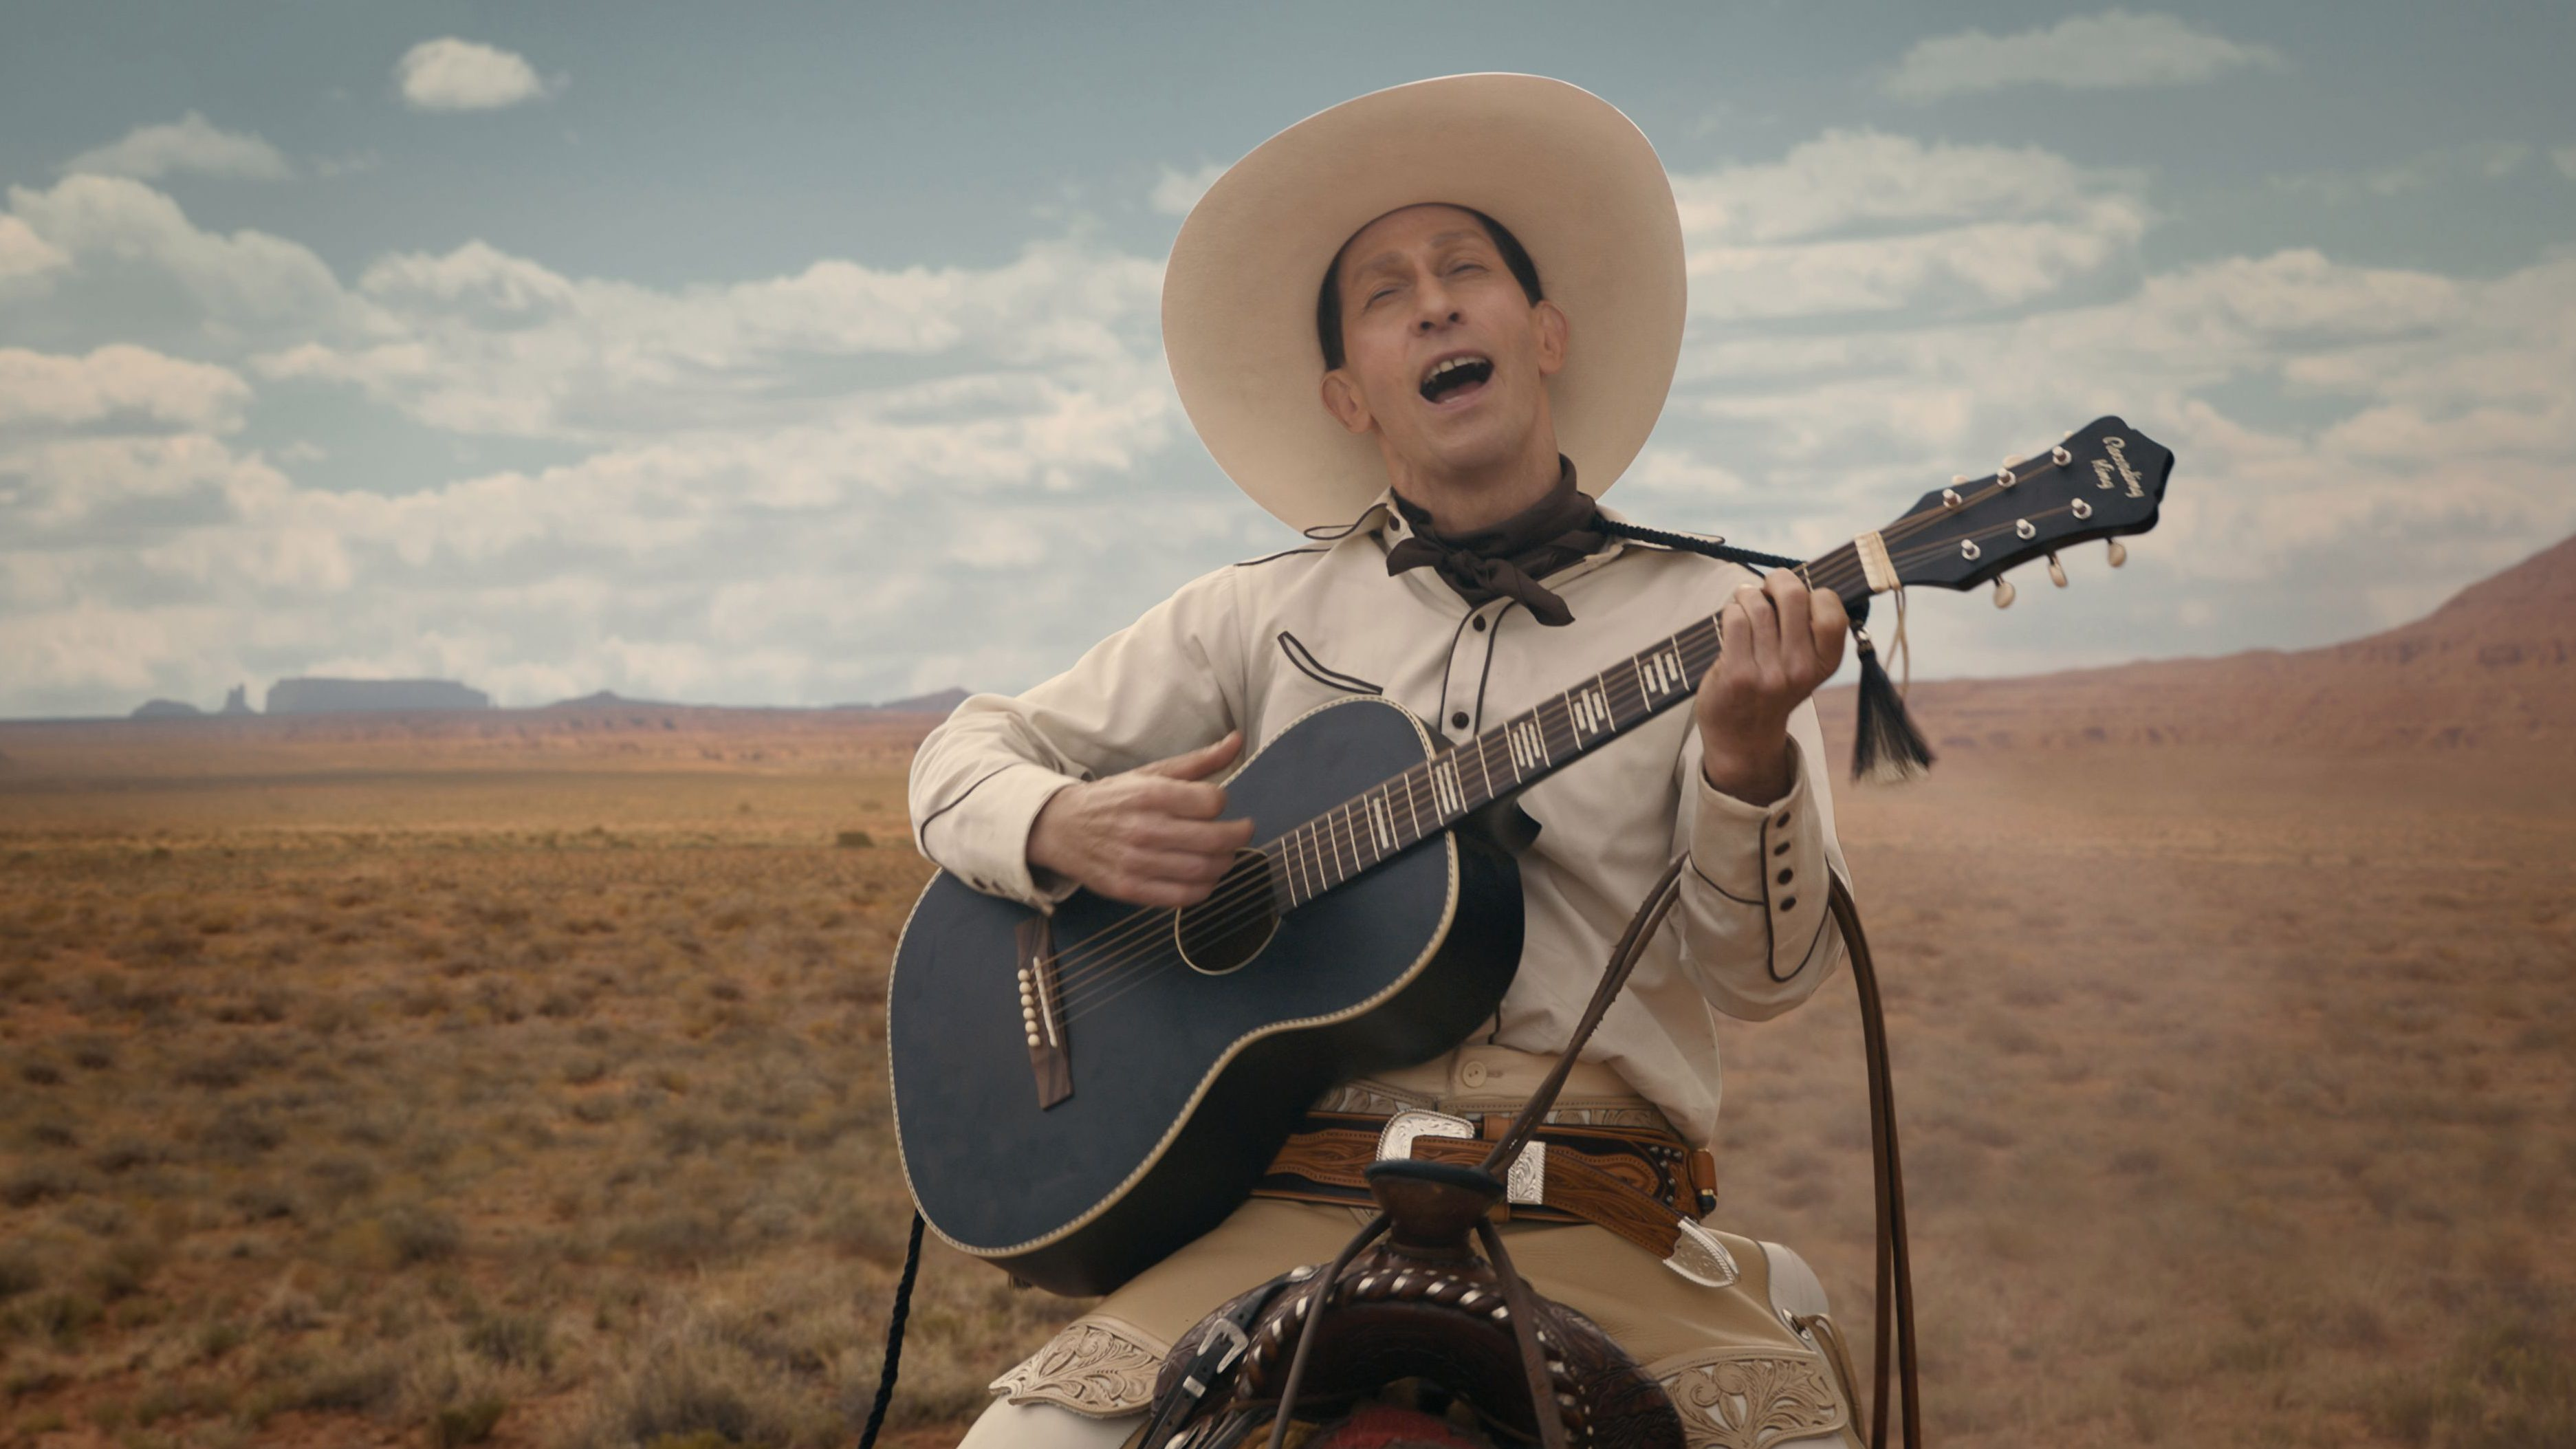 The Coen brothers' new film is a concept album about our tenuous existence